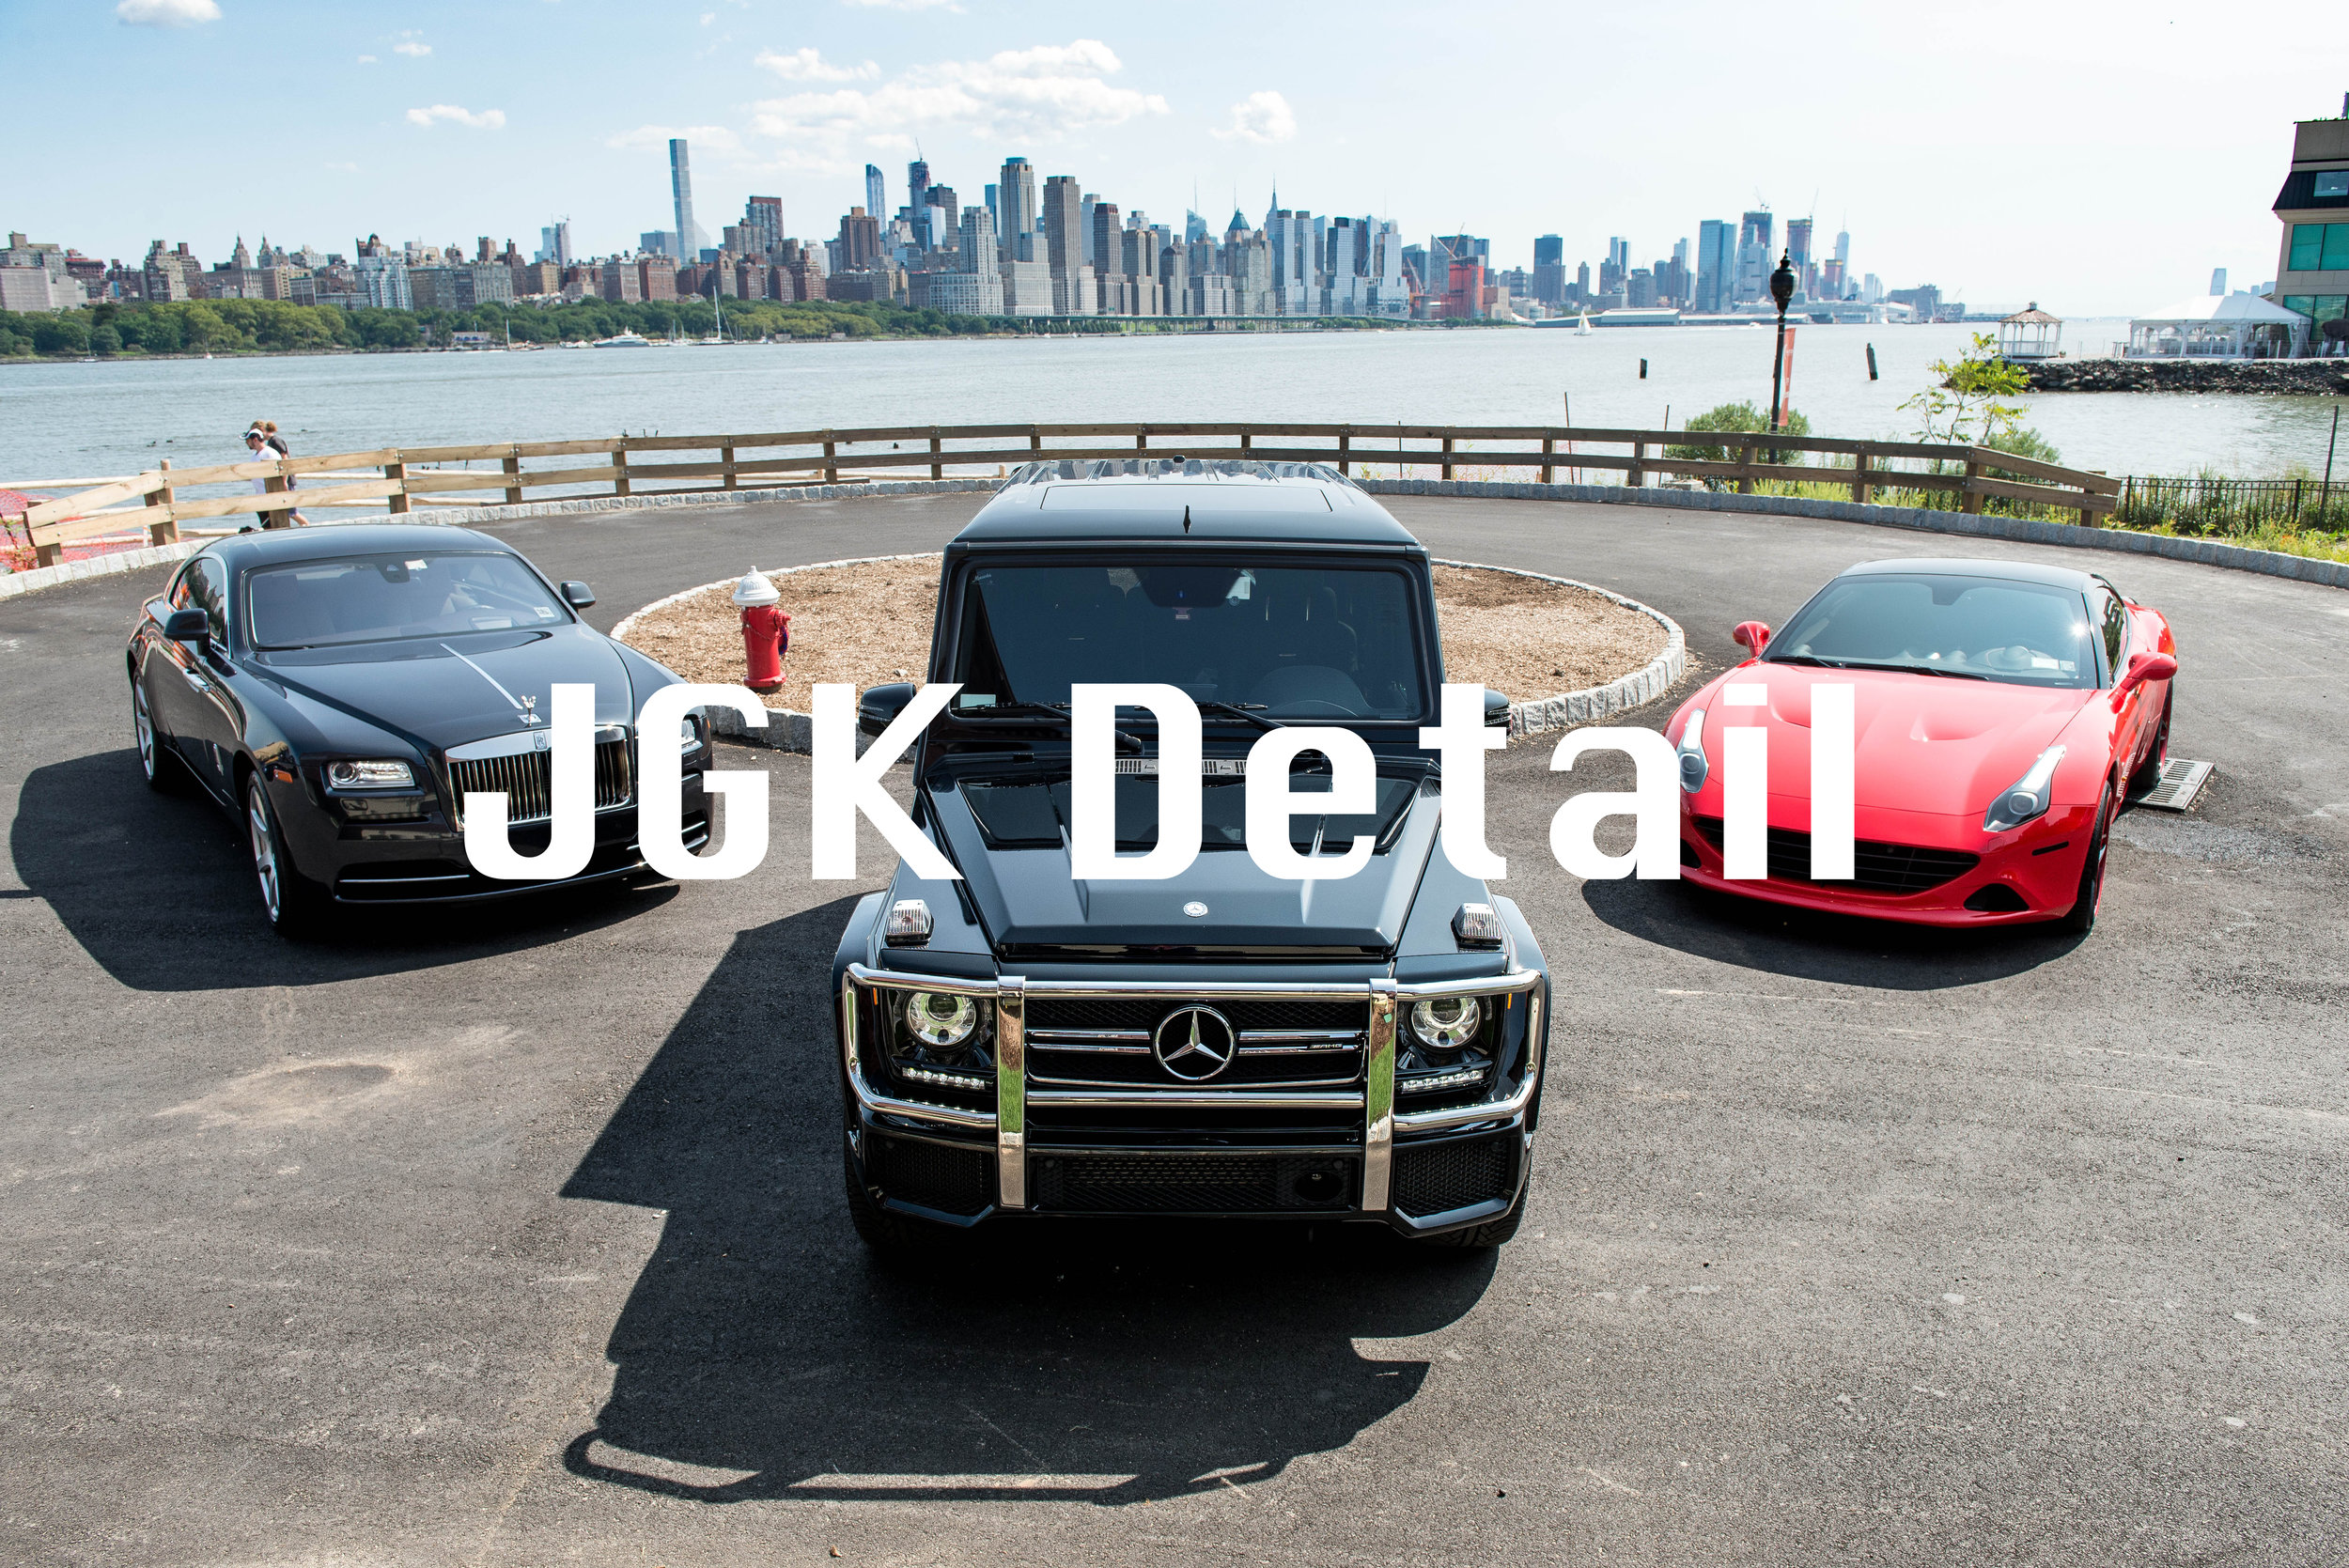 JGK Detail Promotional Video  - JGK Detail is a mobile detailing service based out of Allendale, New Jersey.  Jack Kasparian directed, filmed and edited a promotional video for the company, which features numerous exotic cars. https://www.youtube.com/watch?v=YsymLGEZ-3c